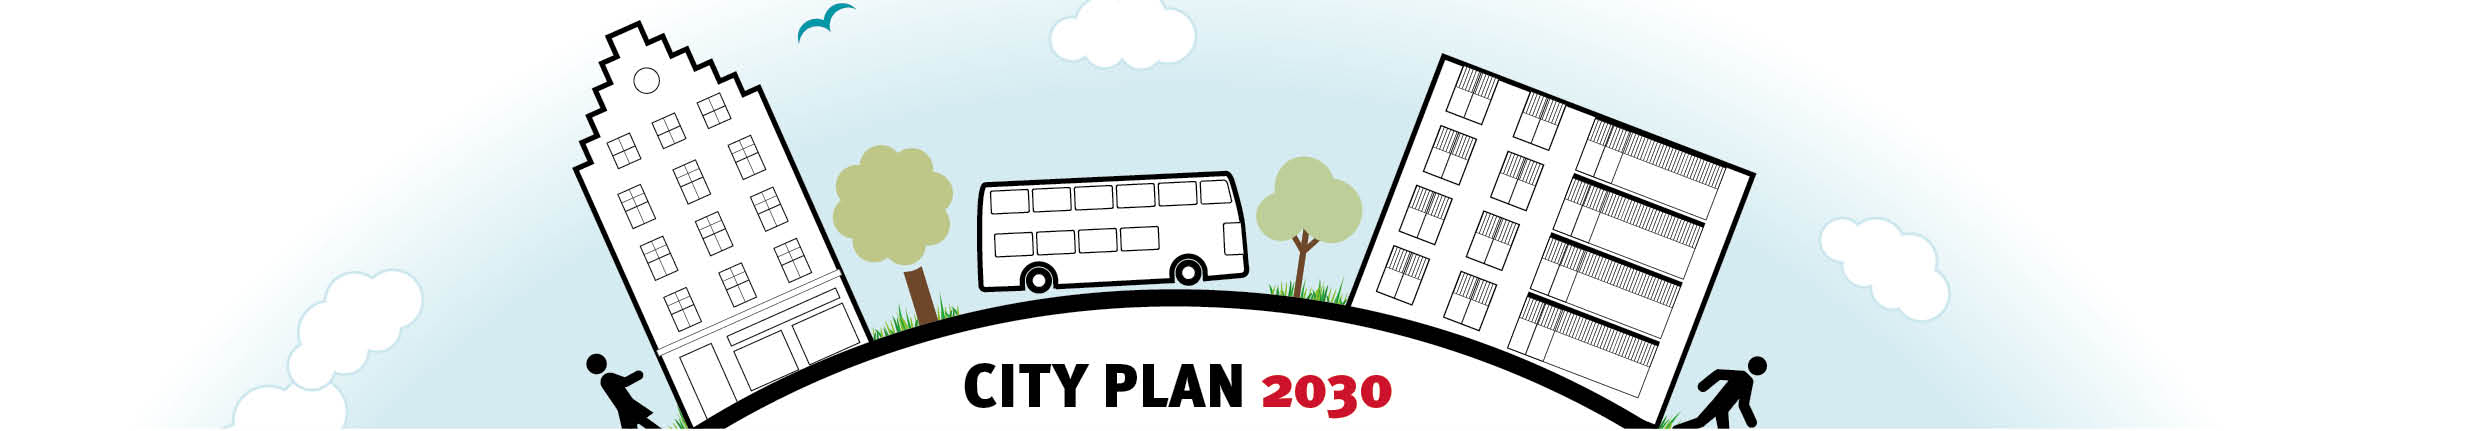 City Plan 2030 logo